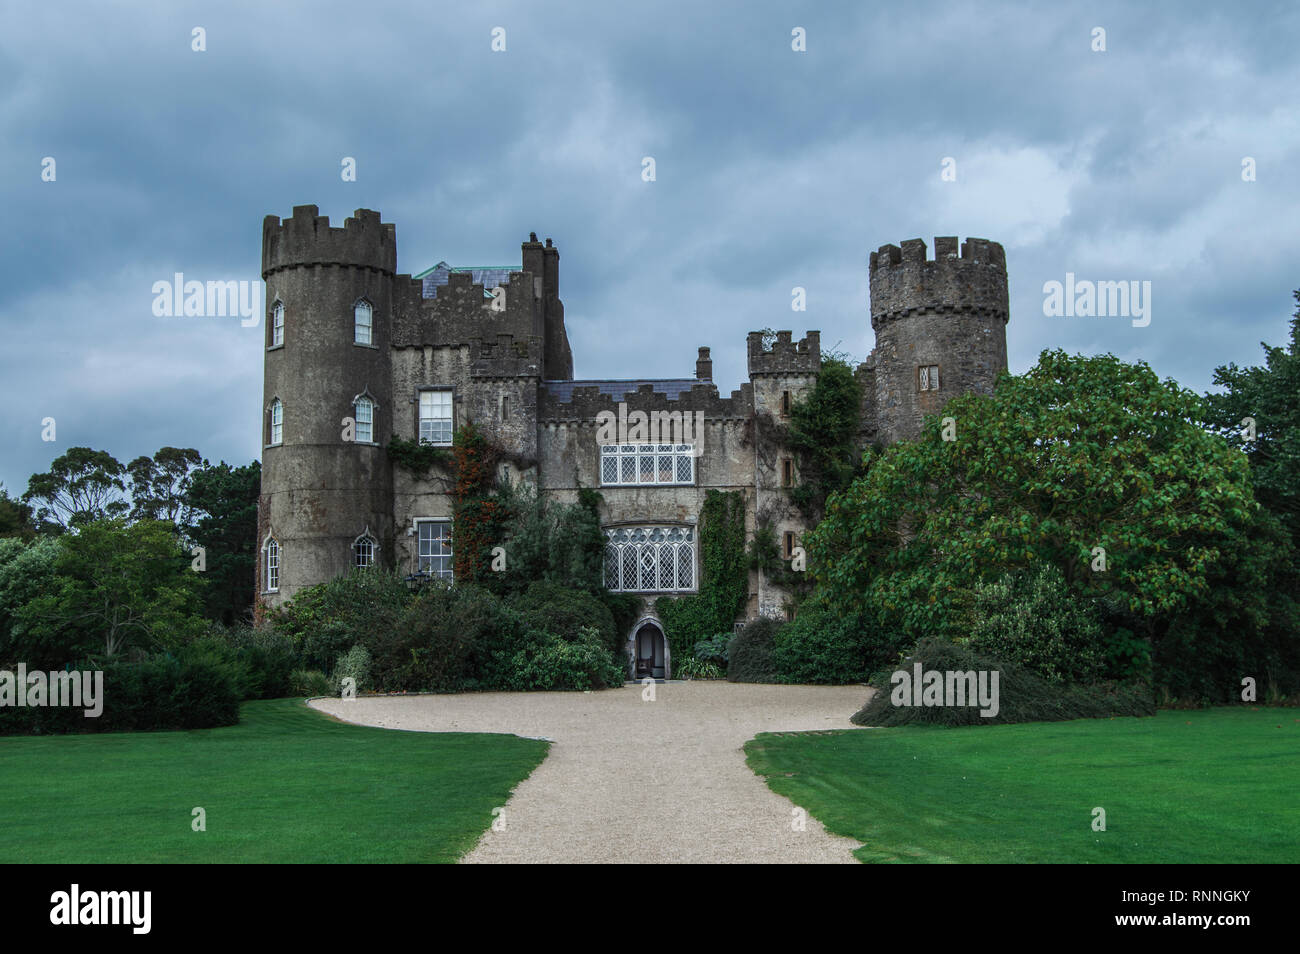 Moody picture of Malahide Castle in Ireland - Stock Image